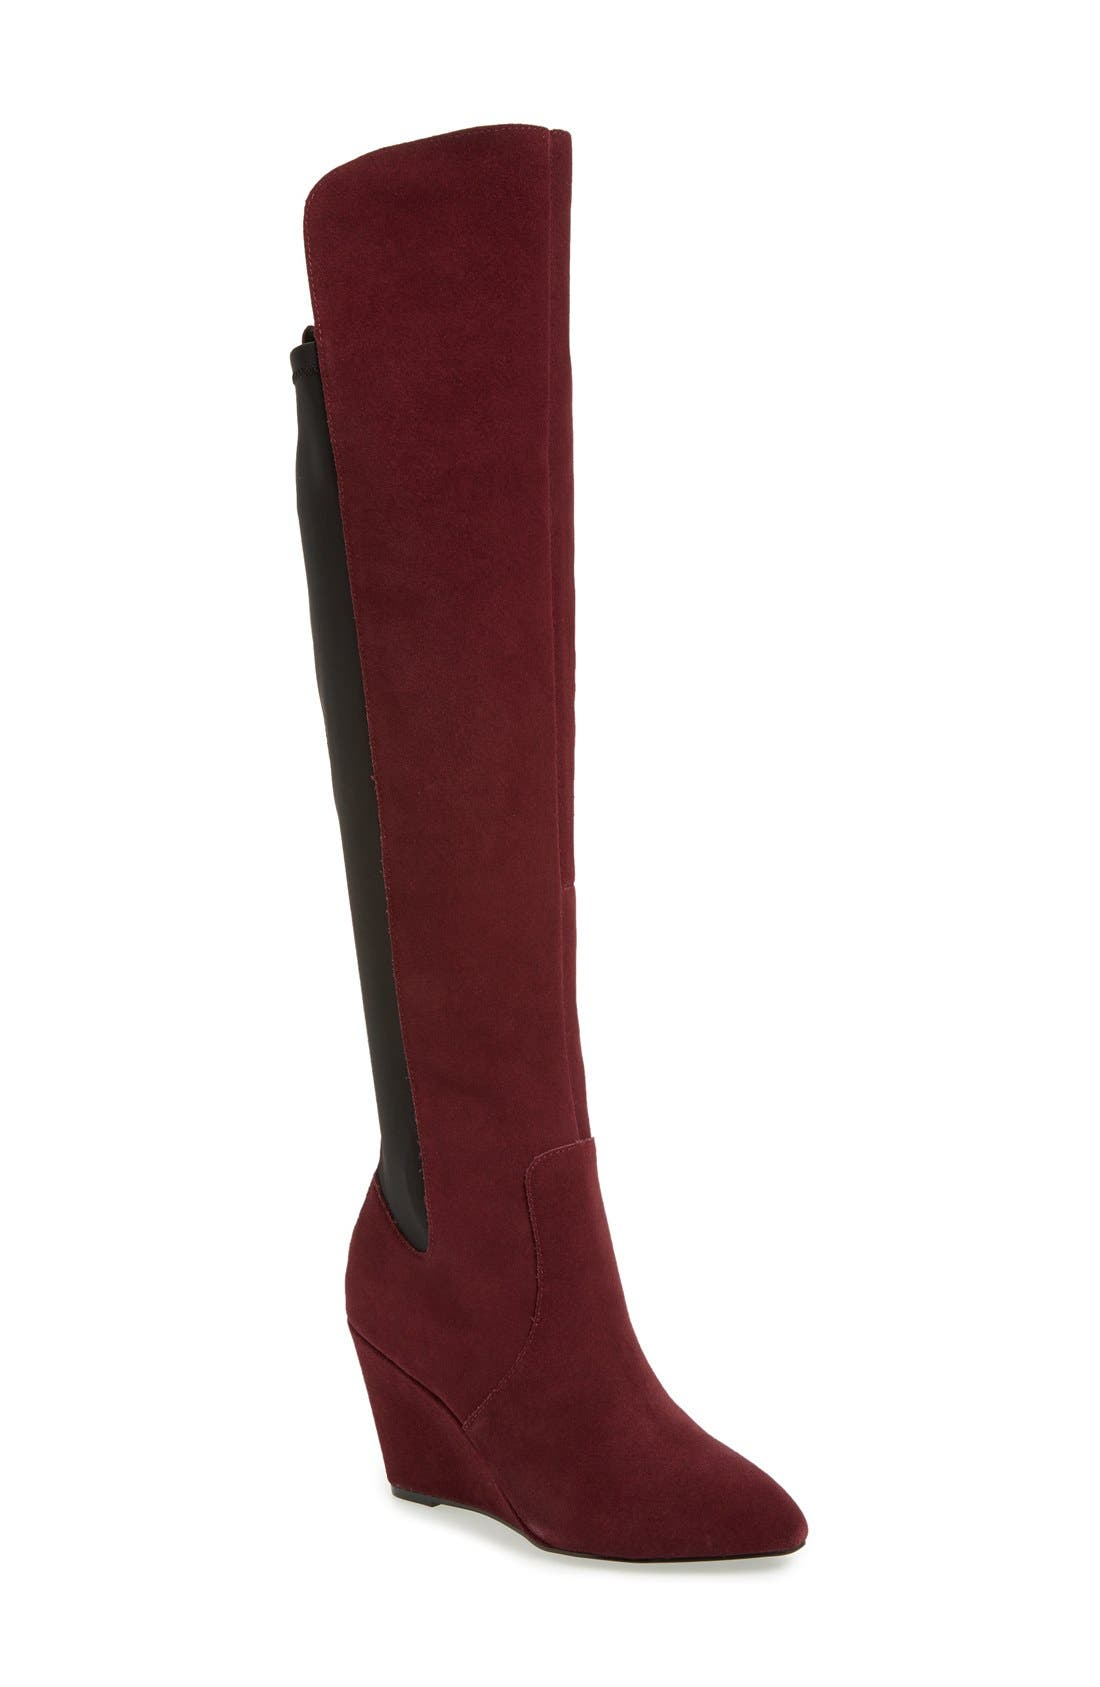 Alternate Image 1 Selected - Charles by Charles David 'Edie' Over the Knee Boot (Women)